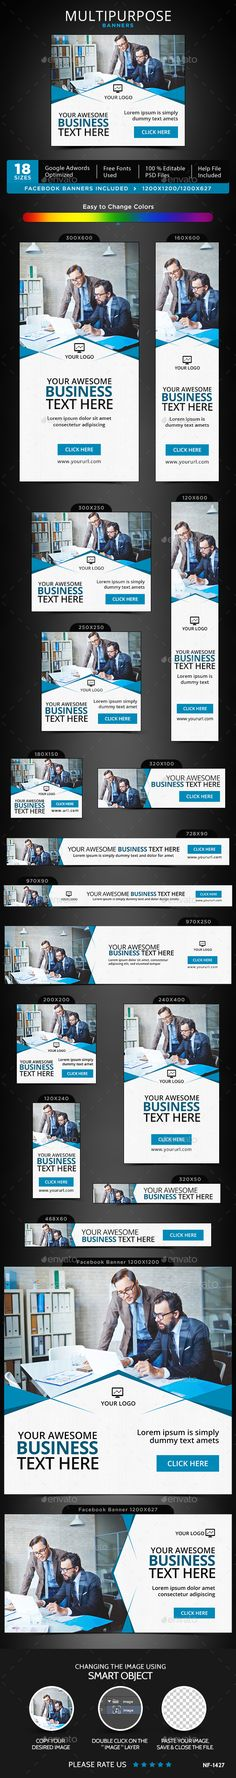 Multipurpose Banners Design Template - Banners & Ads Web Template PSD. Download here: https://graphicriver.net/item/multipurpose-banners/17076246?s_rank=271&ref=yinkira